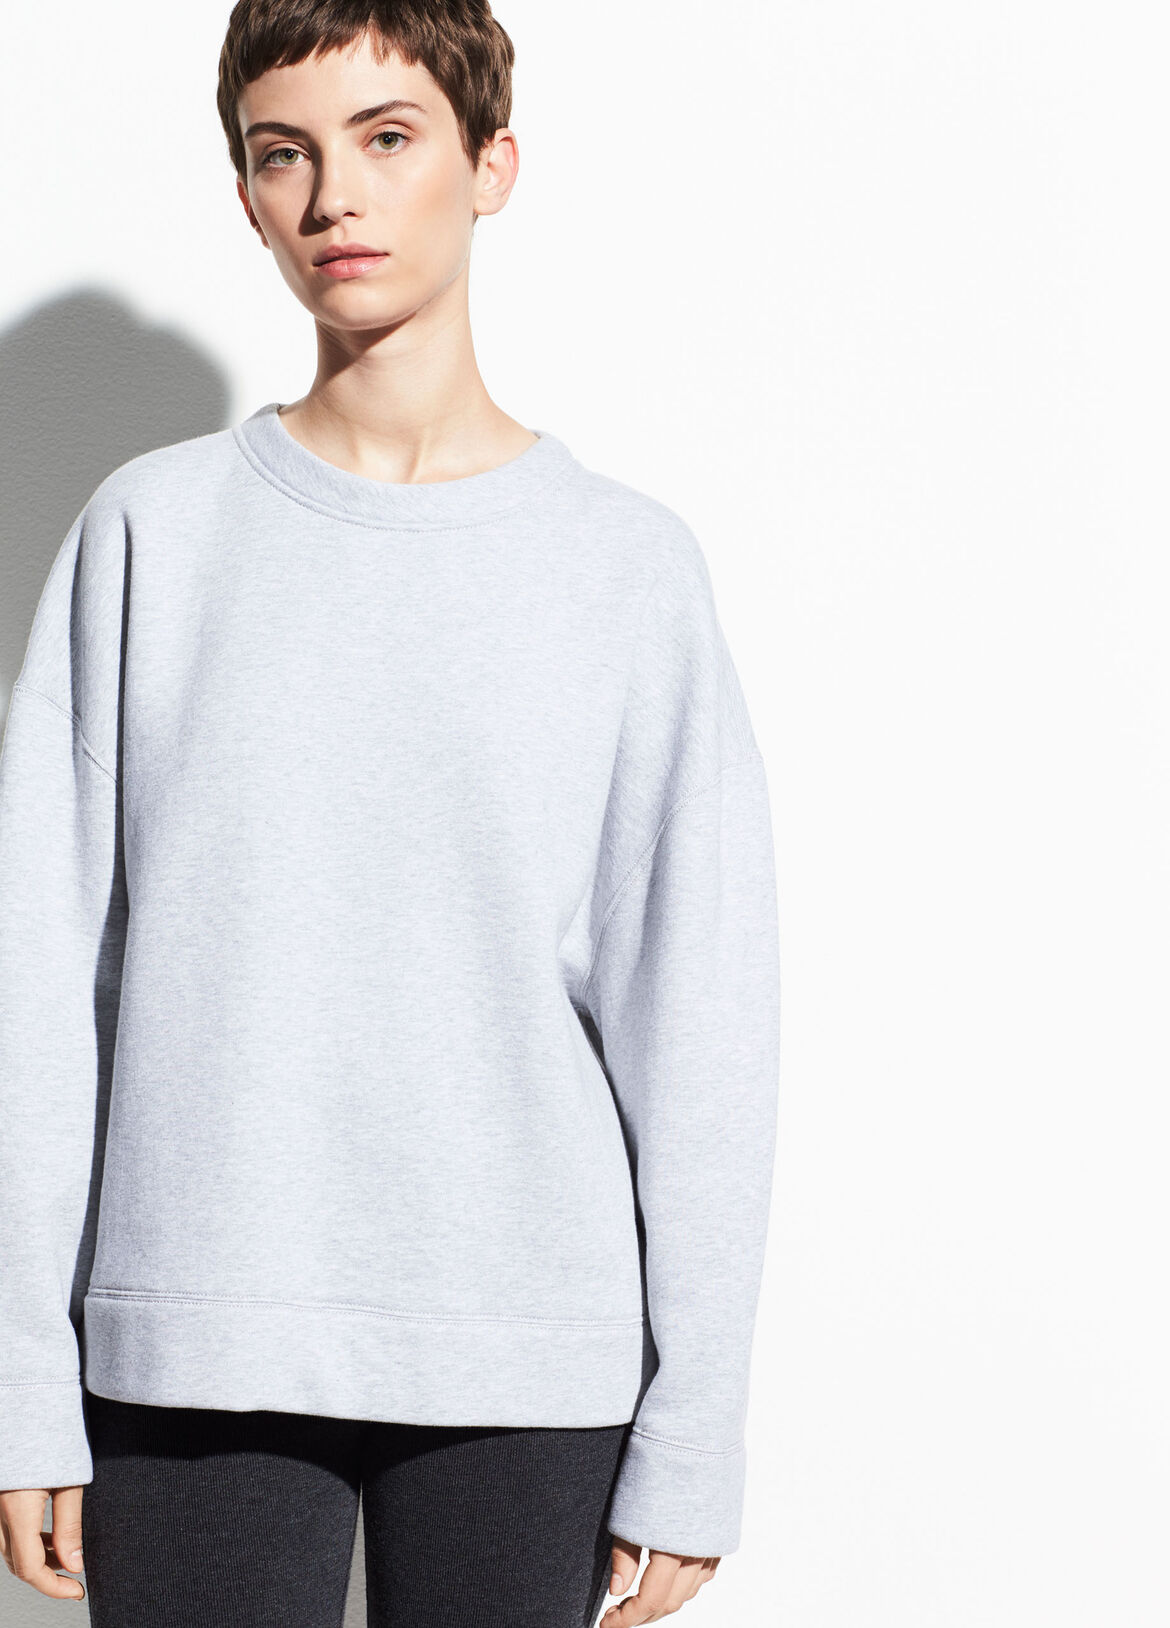 c43cc67cbff78 Oversized Cotton Pullover